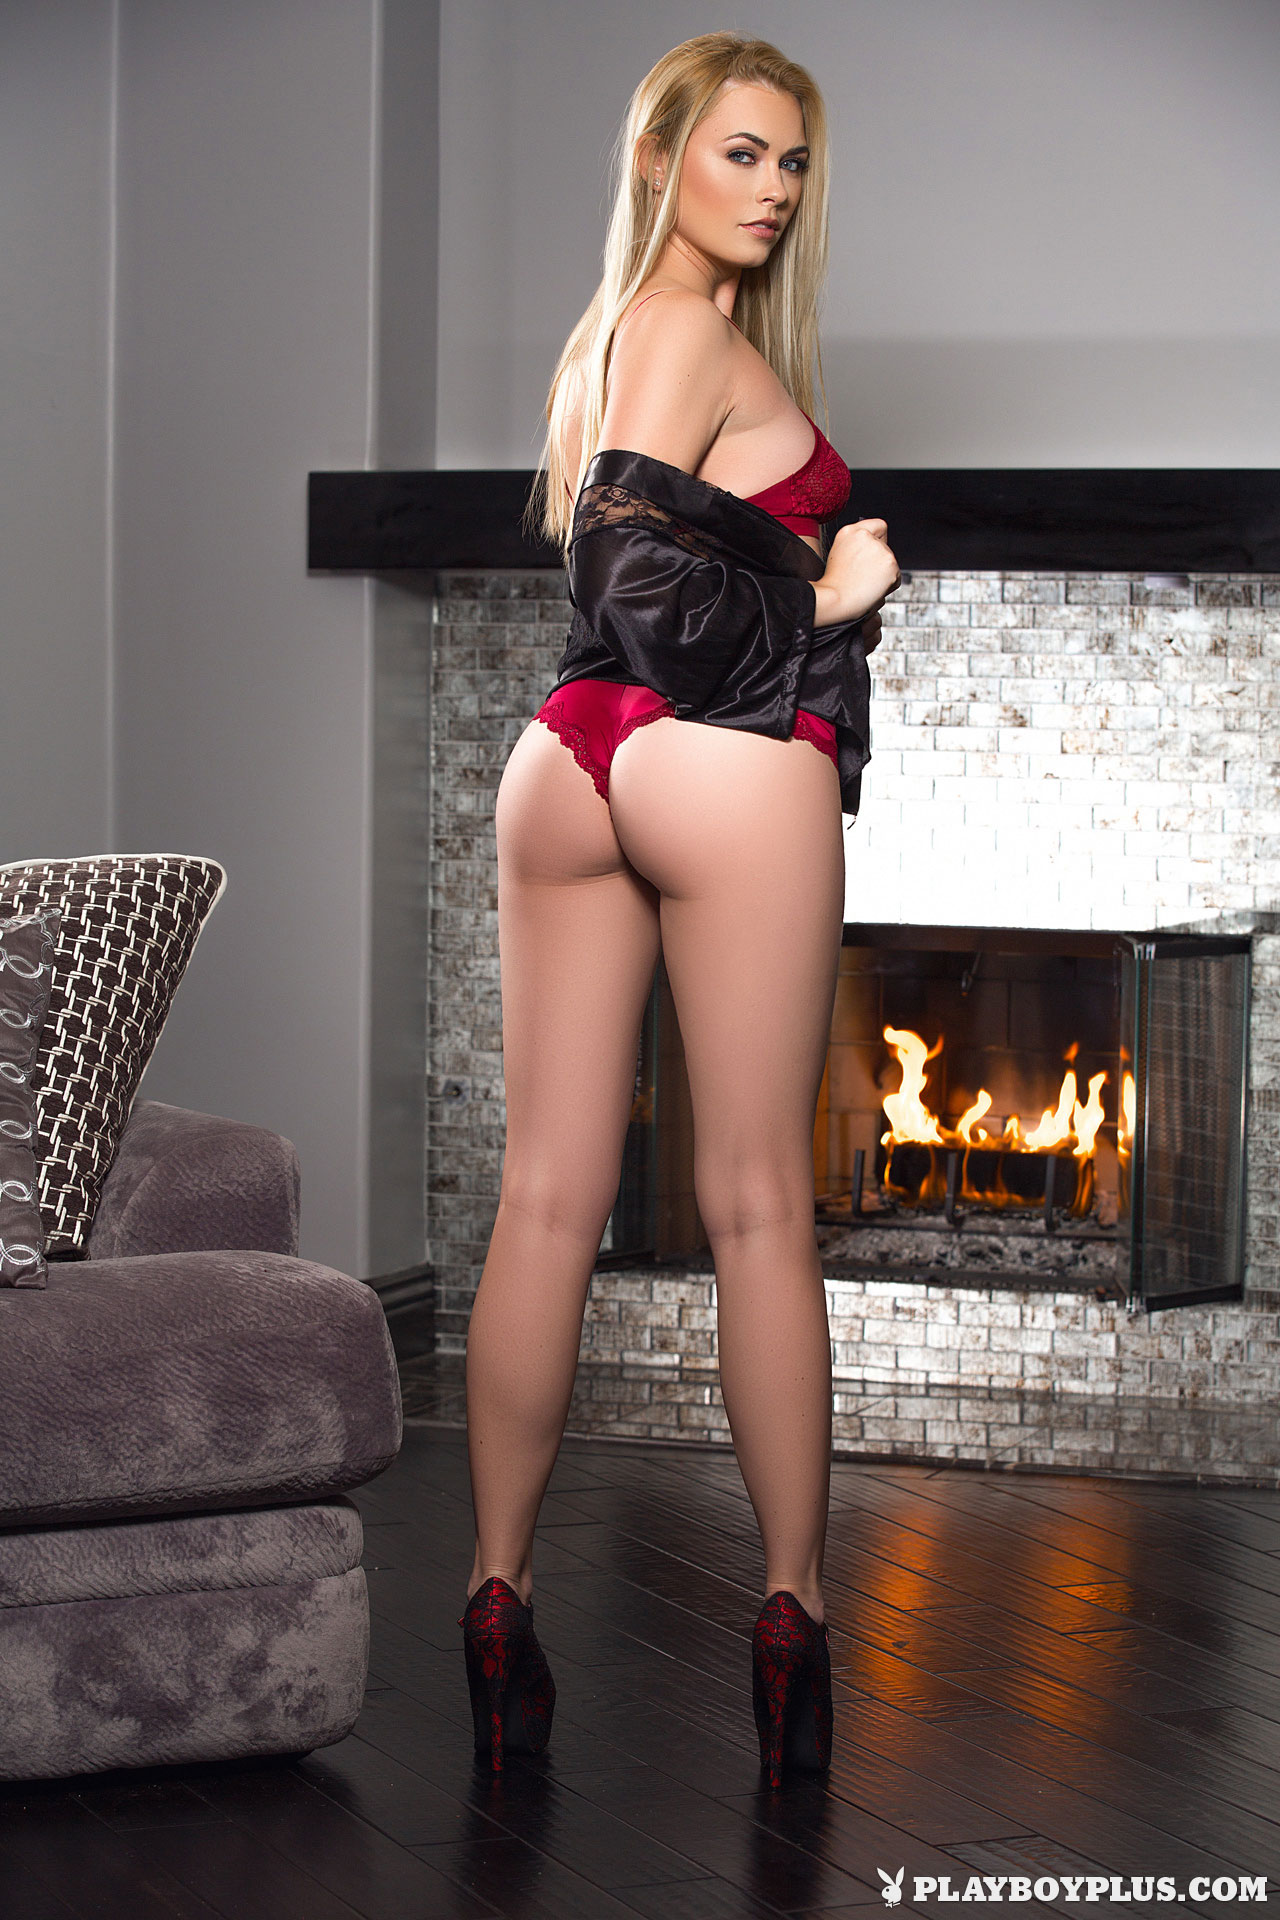 bailey-rayne-nude-fireplace-blonde-playboy-02